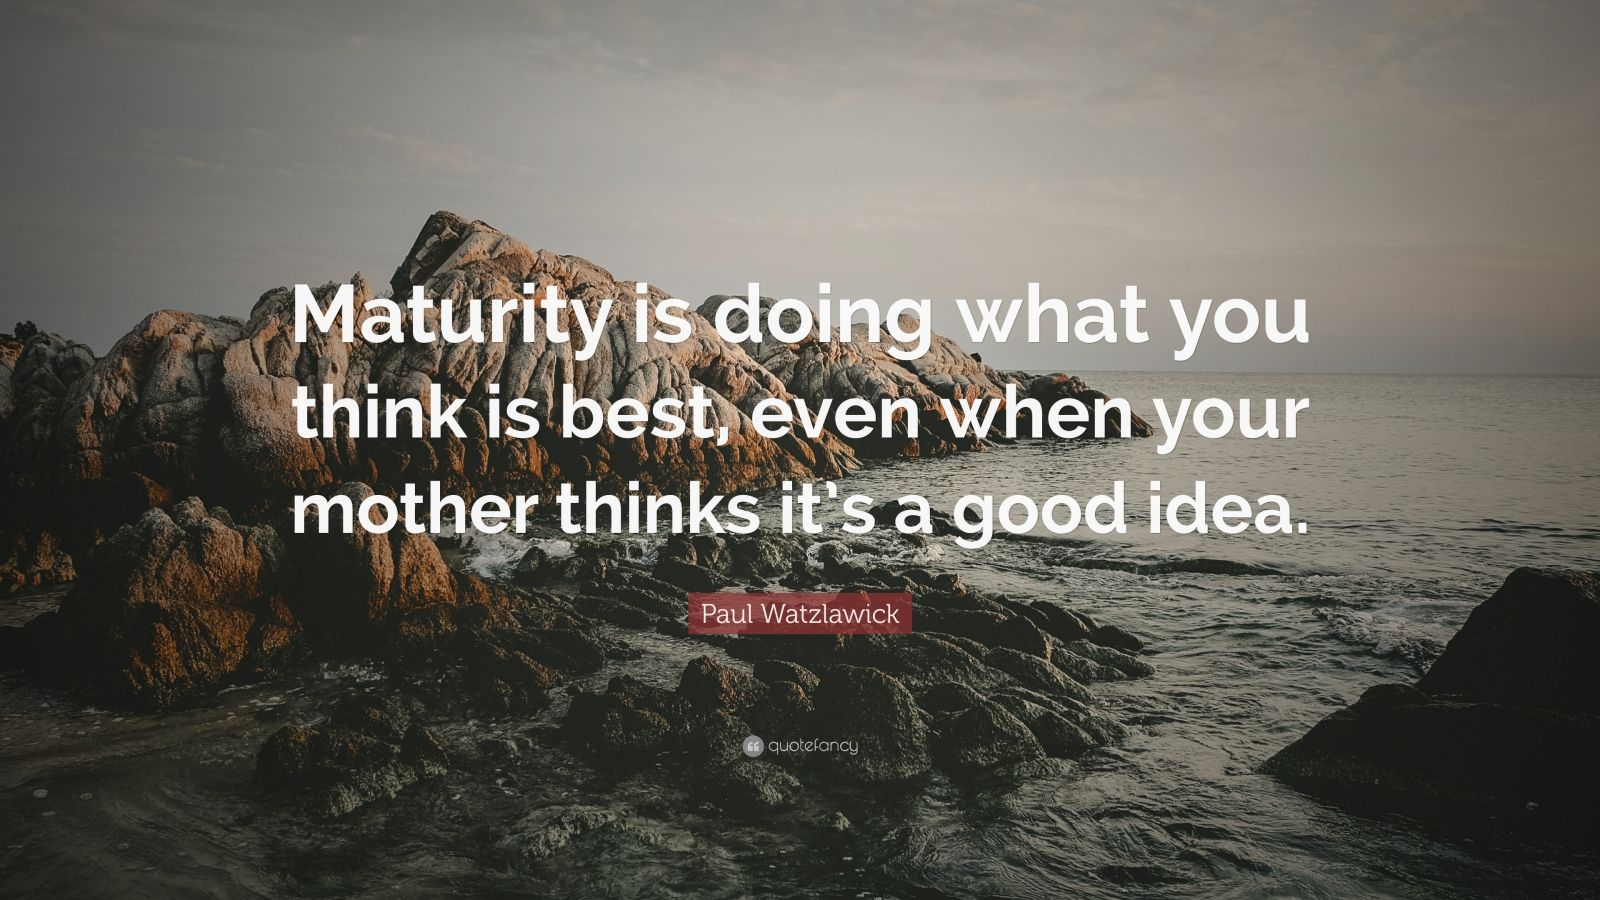 """Paul Watzlawick Quote: """"Maturity is doing what you think is best, even when your mother thinks it's a good idea."""""""